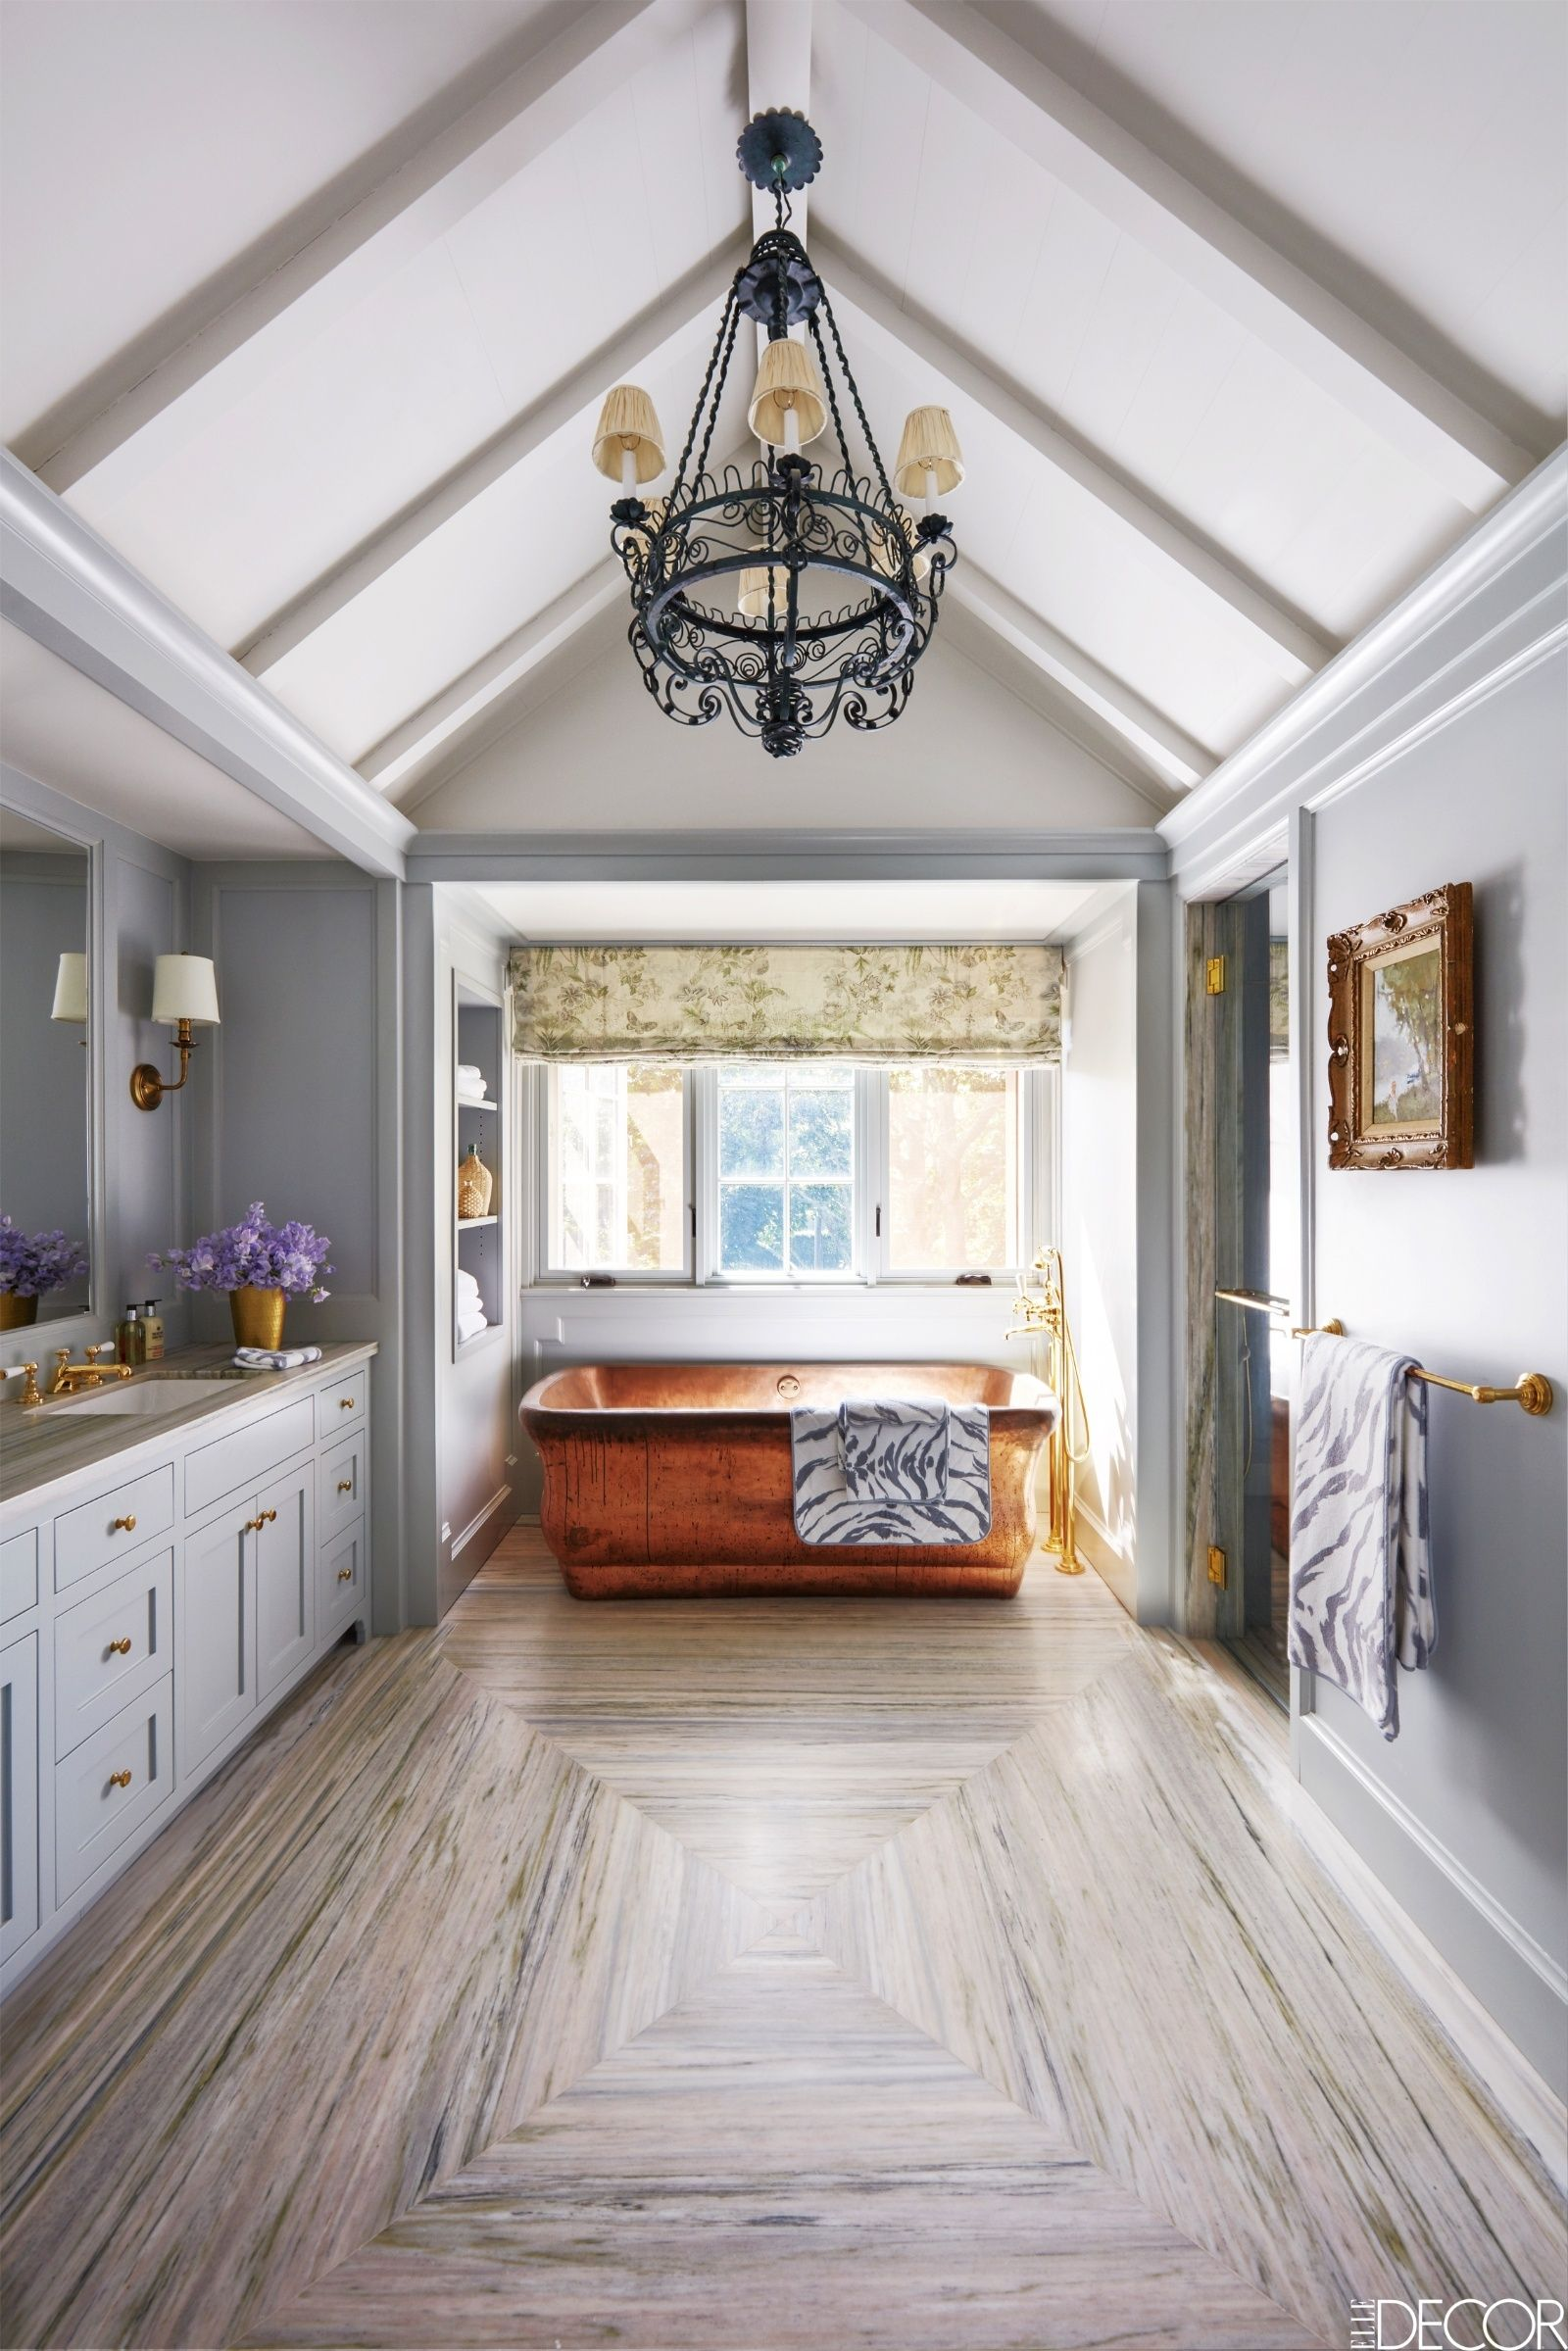 20 Of The Most Stunning Bathrooms Of 2016 | Decorating games ...